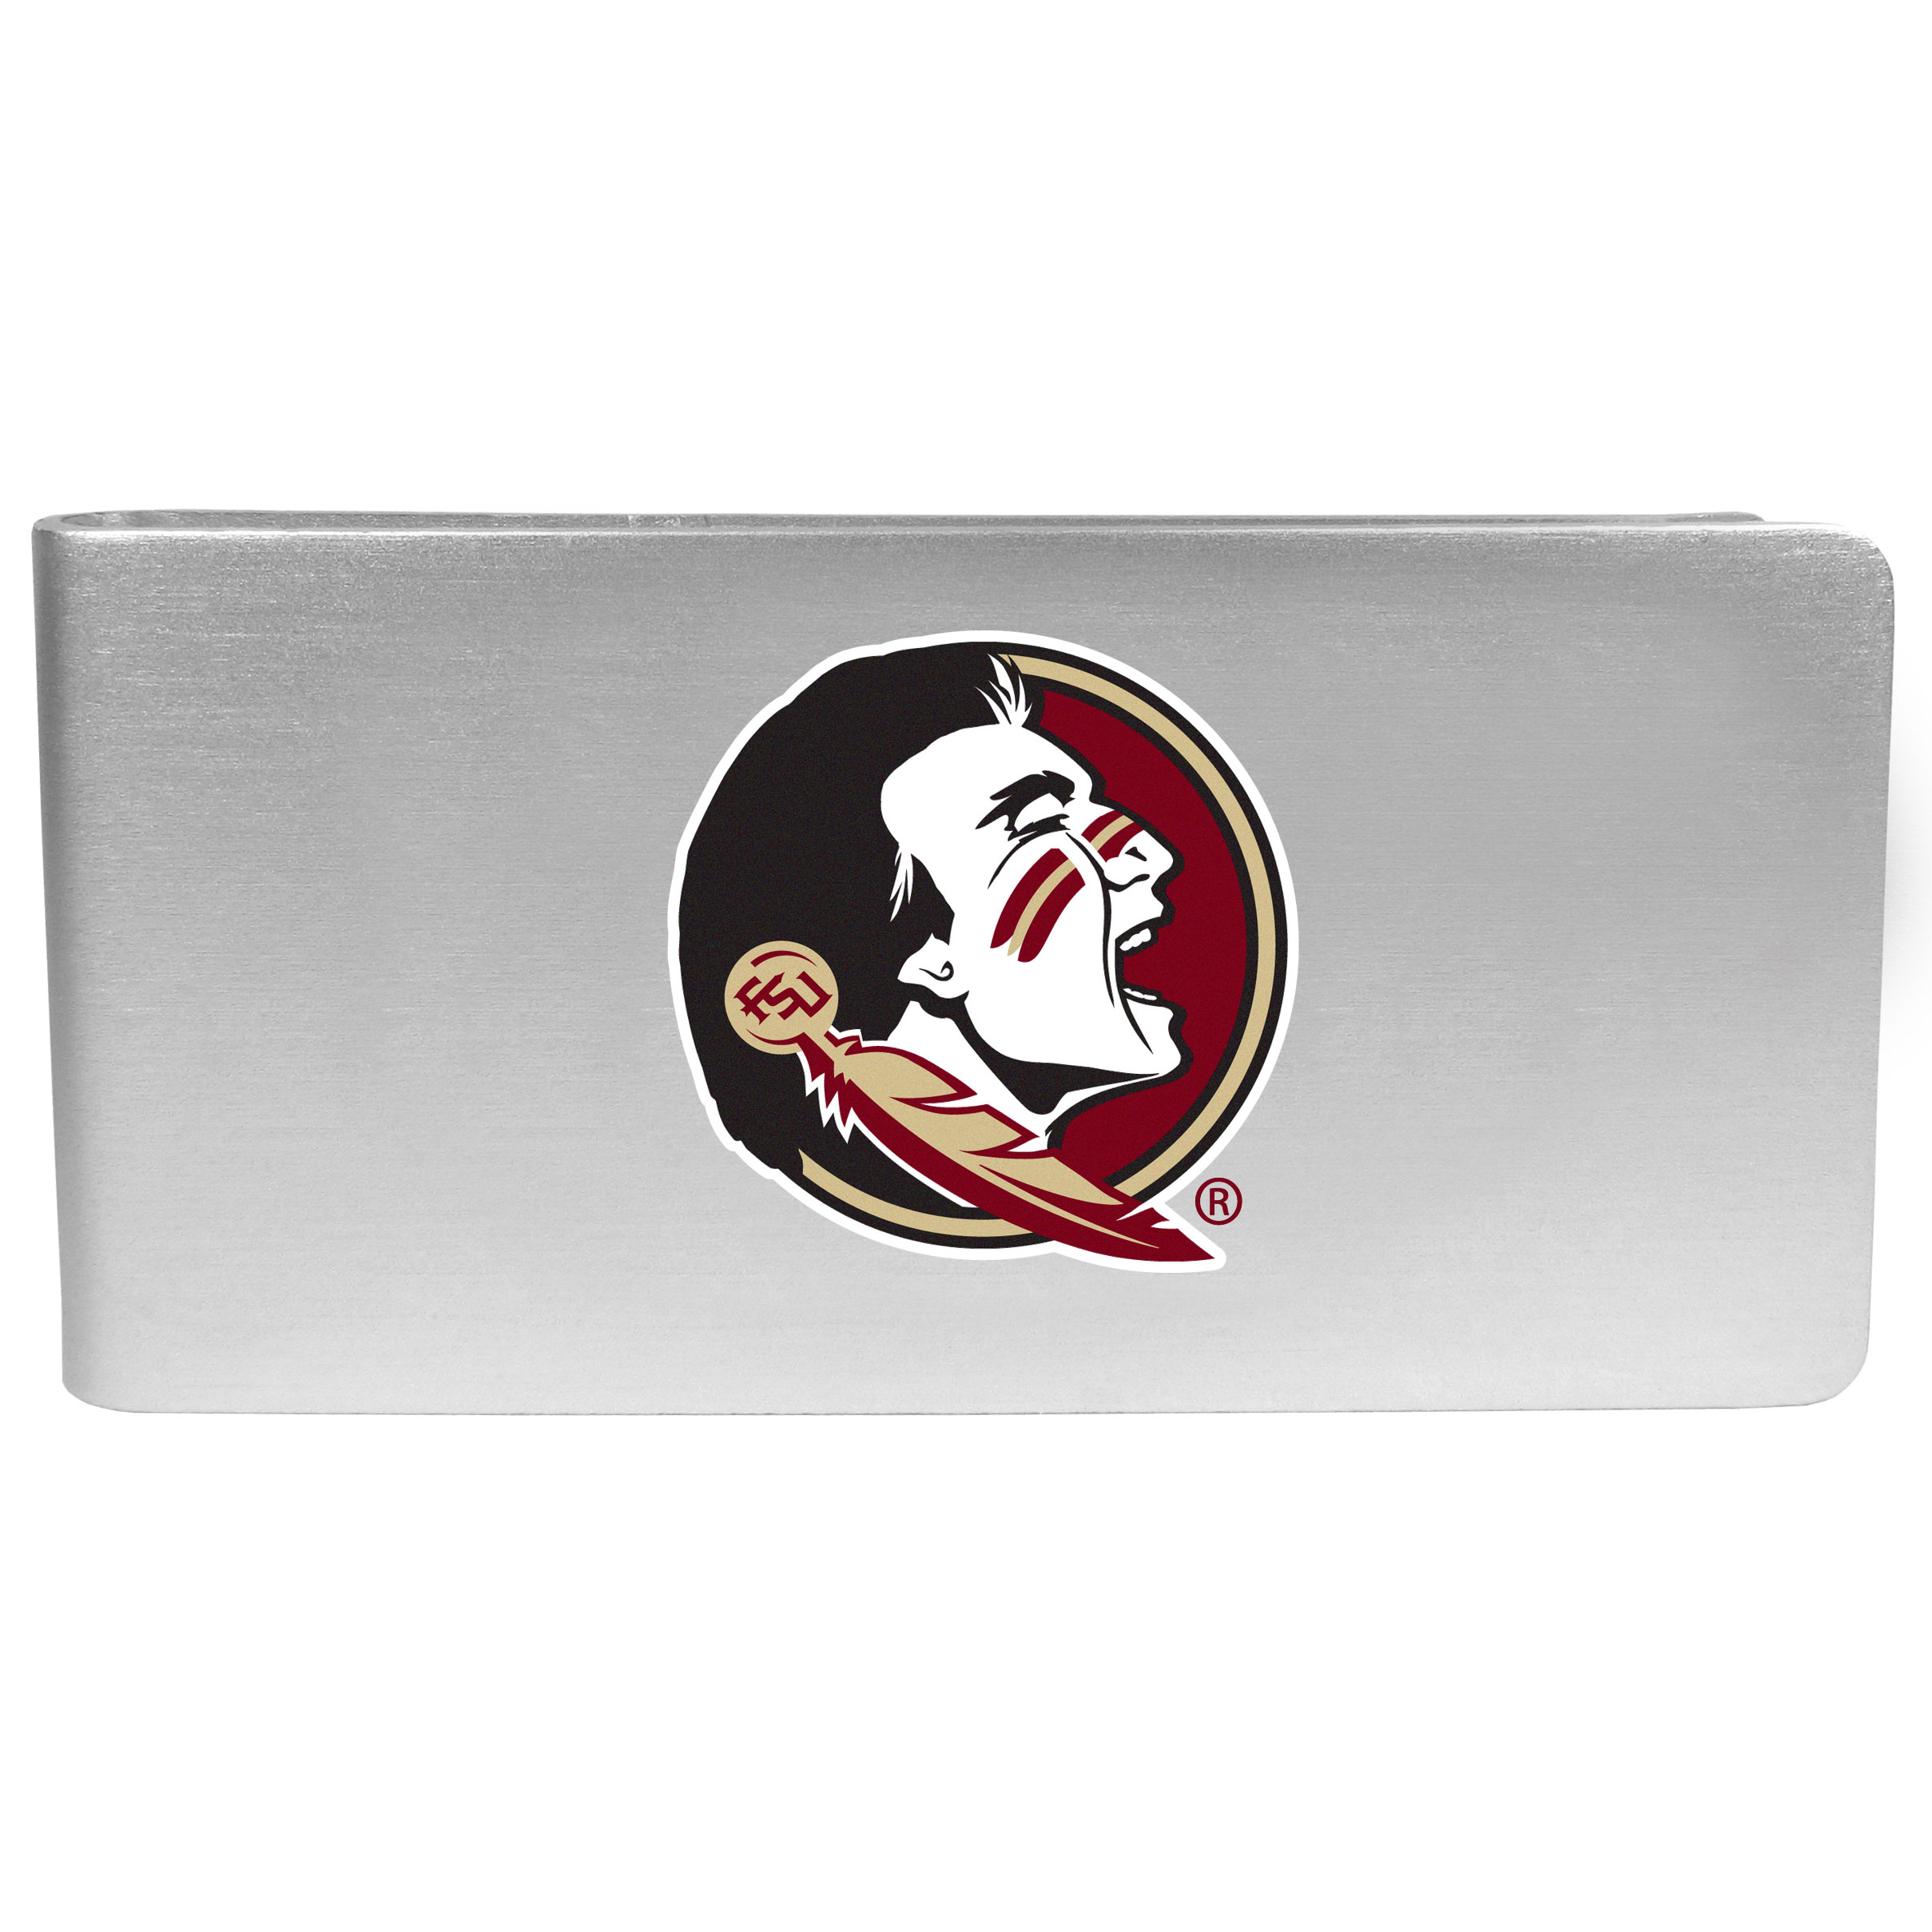 Florida St. Seminoles Logo Money Clip - Our brushed metal money clip has classic style and functionality. The attractive clip features the Florida St. Seminoles logo expertly printed on front.